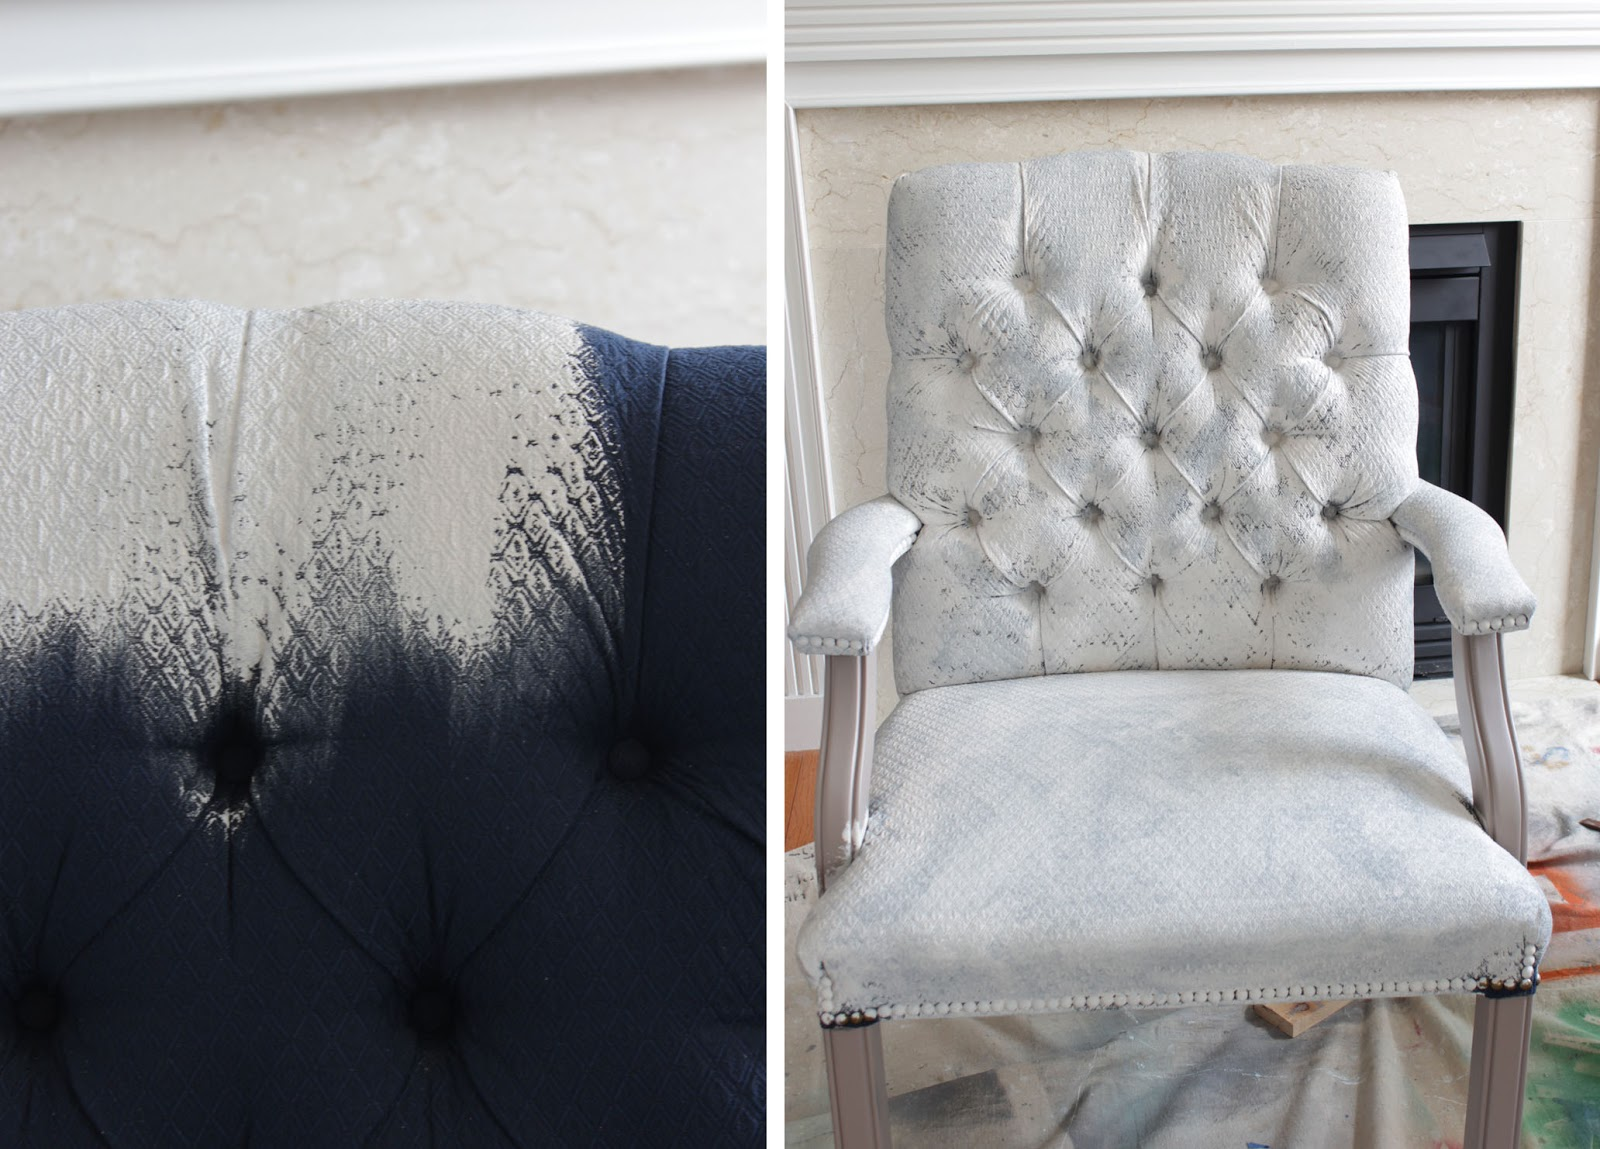 For The First Chair I Used A Purdy Paint Brush To Paint Most Of The Chair.  I Had To Come Back To Paint The Tufted Back With A Smaller Brush, ...